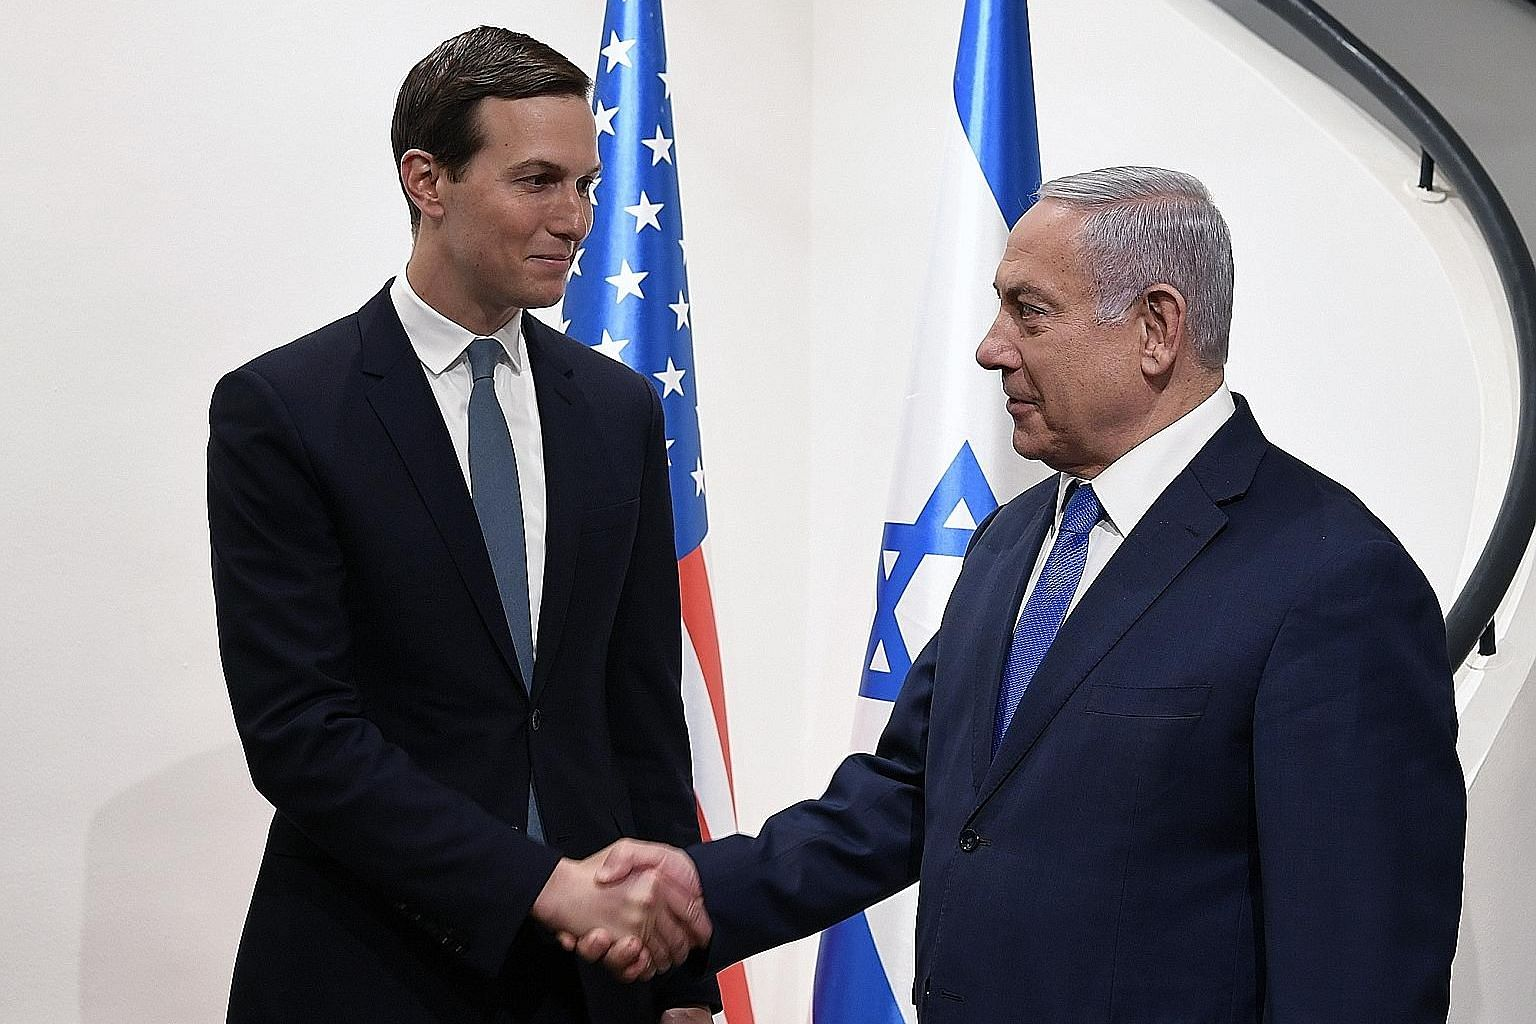 US President Donald Trump's son-in-law and aide Jared Kushner (left) meeting Israeli Prime Minister Benjamin Netanyahu yesterday. PHOTO: EPA-EFE